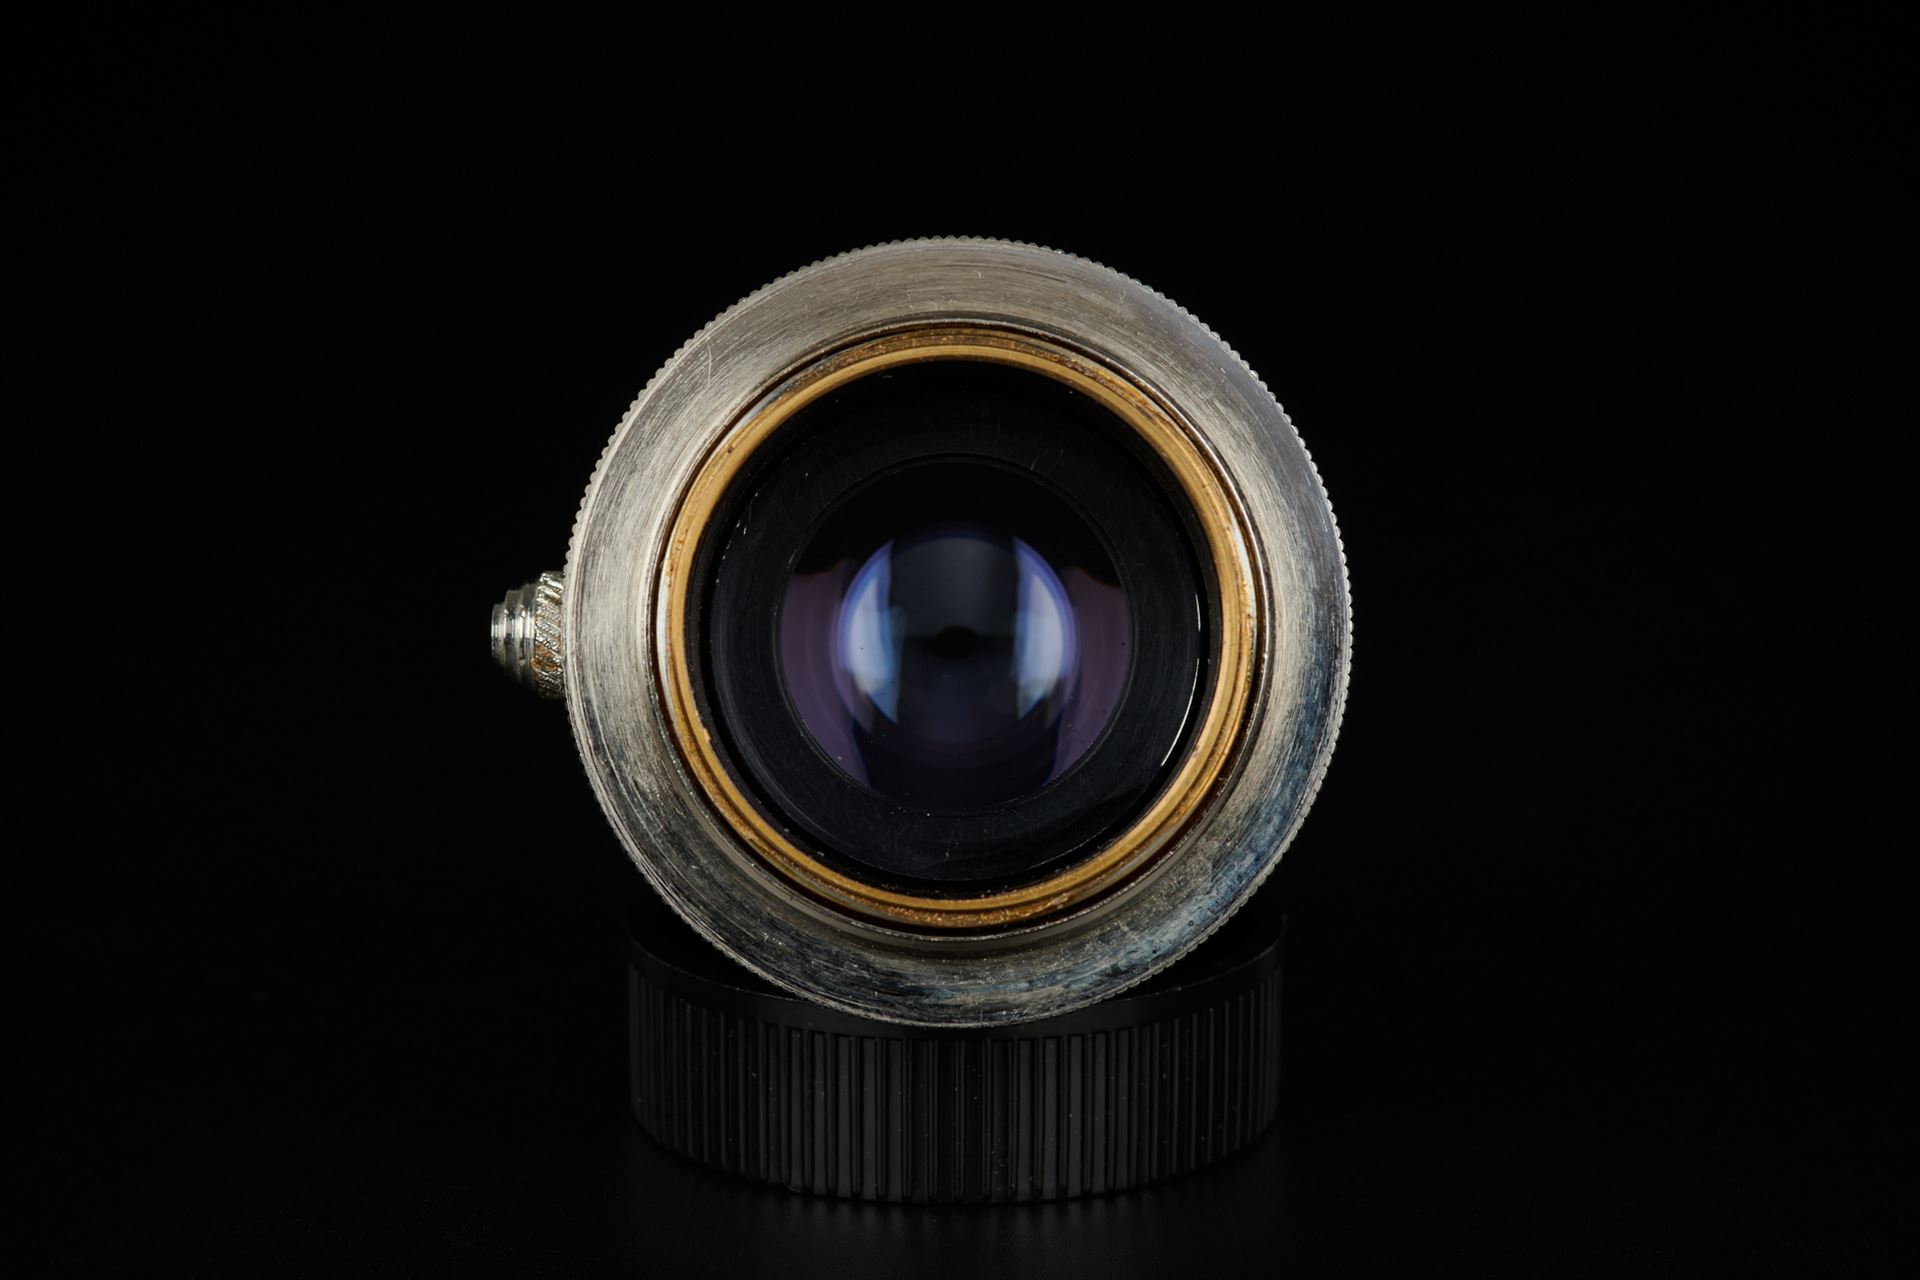 Picture of angenieux type s1 50mm f/1.9 leica screw mount ltm